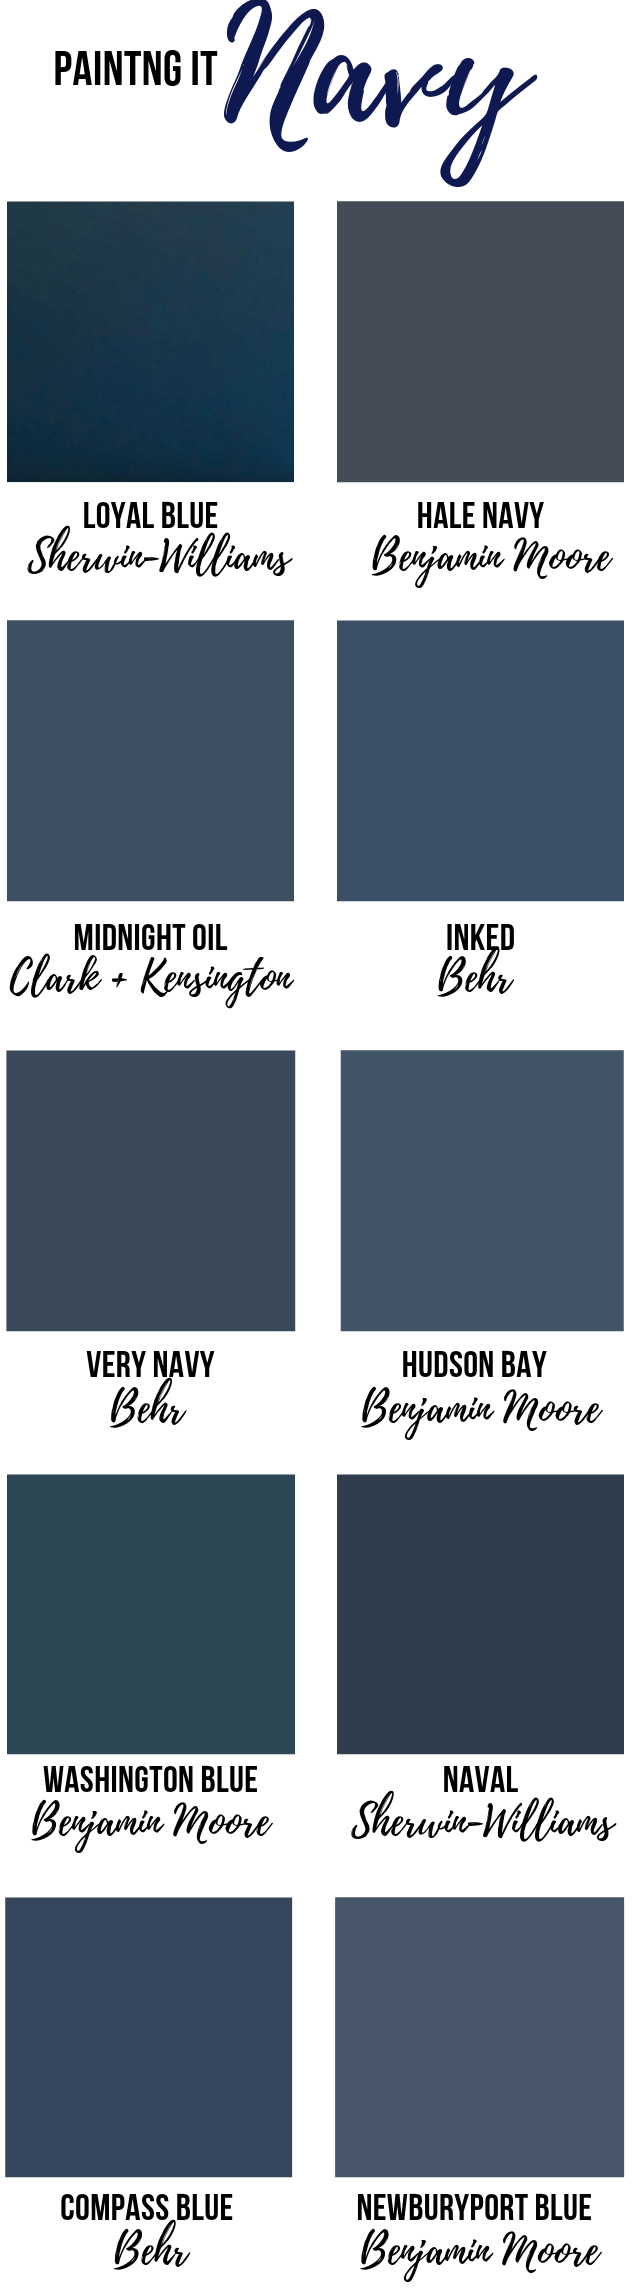 Navy Paint Colors